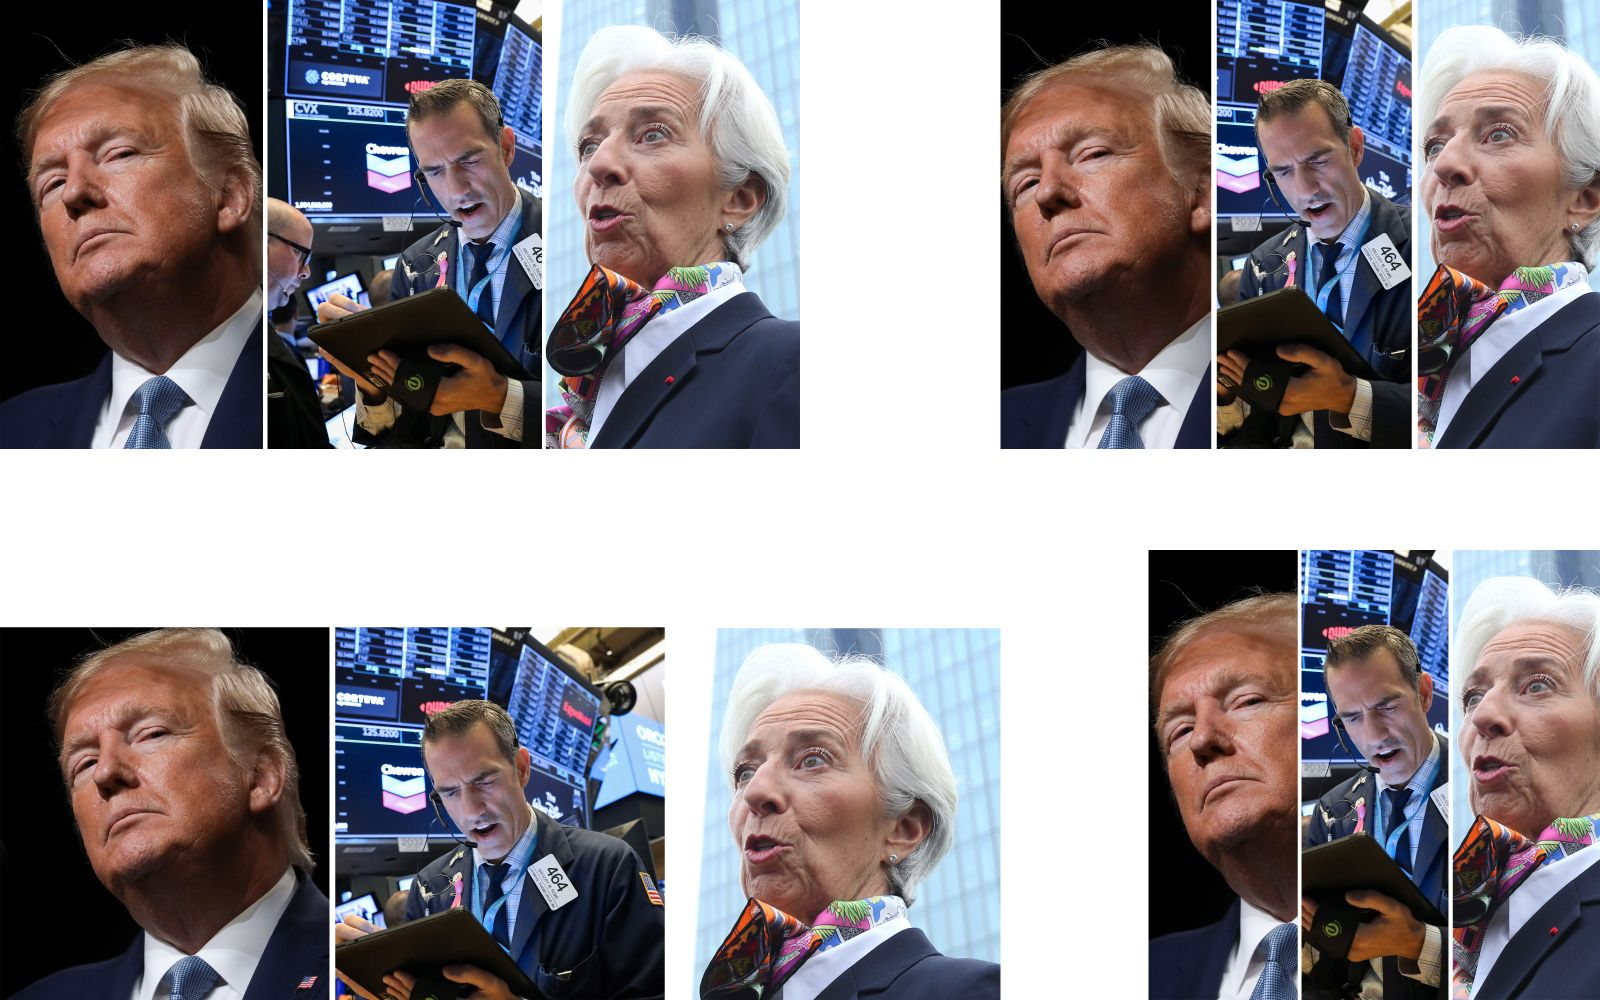 KOMBO Donald Trump / New York Stock Exchange / Christine Lagarde